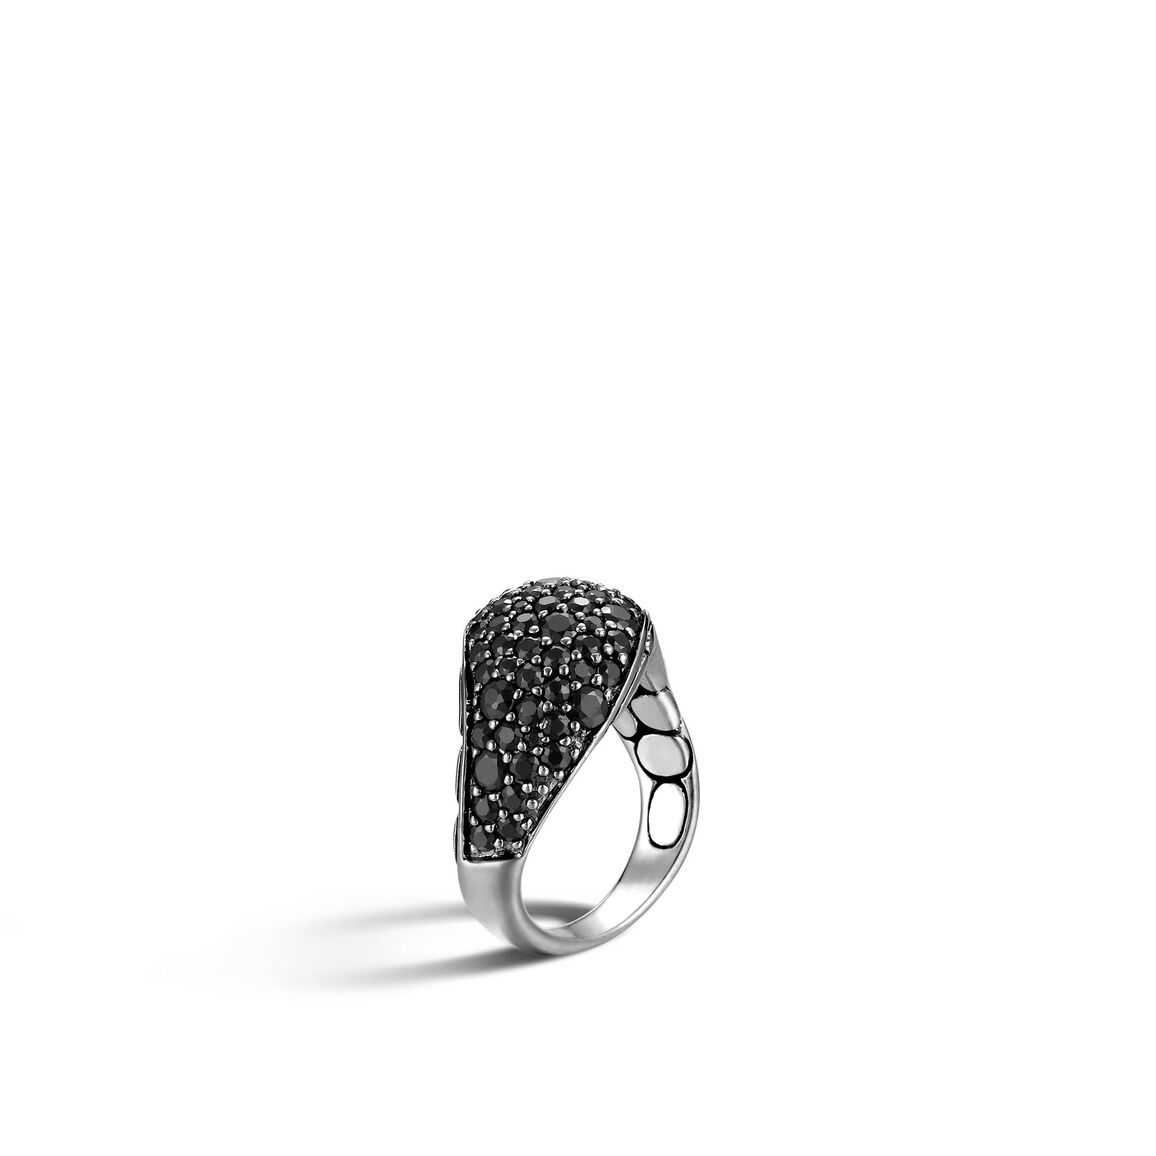 Kali Ring in Silver with Gemstone